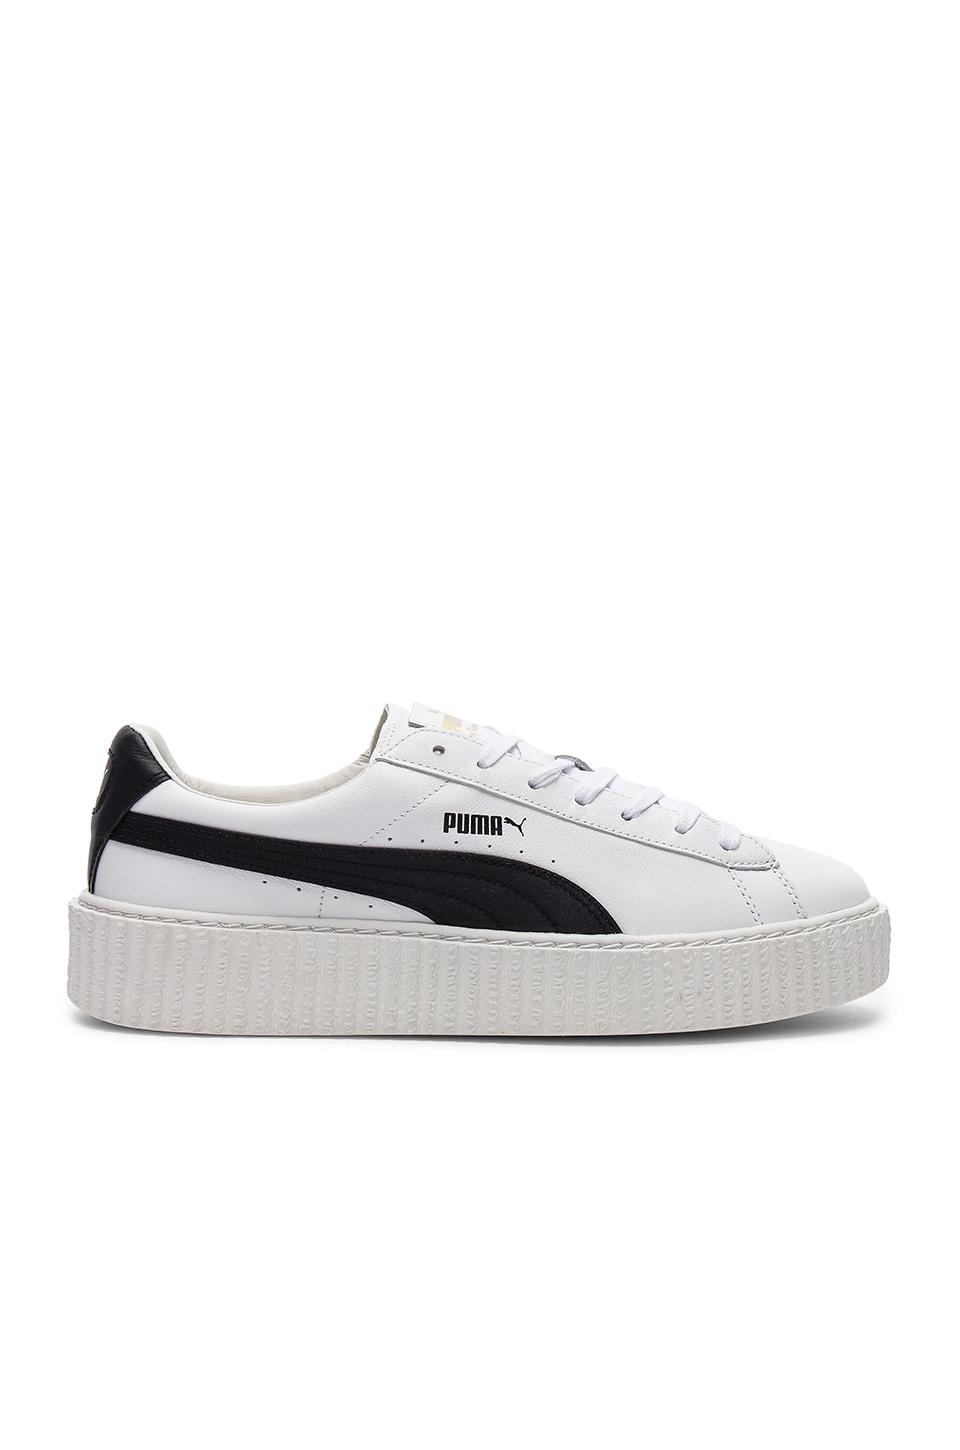 Fenty by Puma Cracked Leather Creeper in White & Black & White